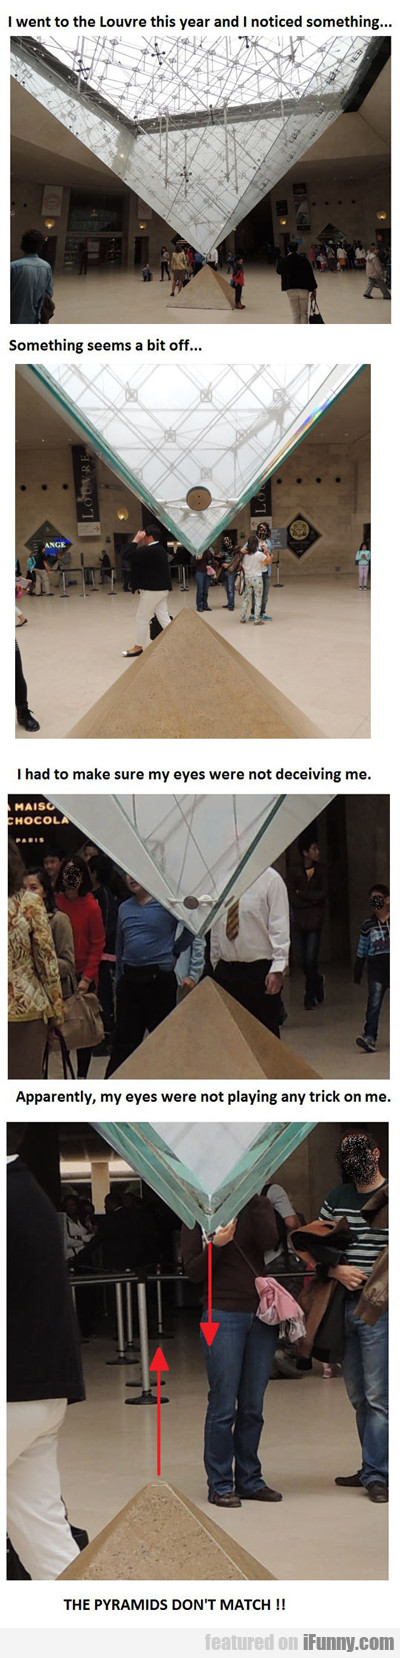 I went to the louvre this year...